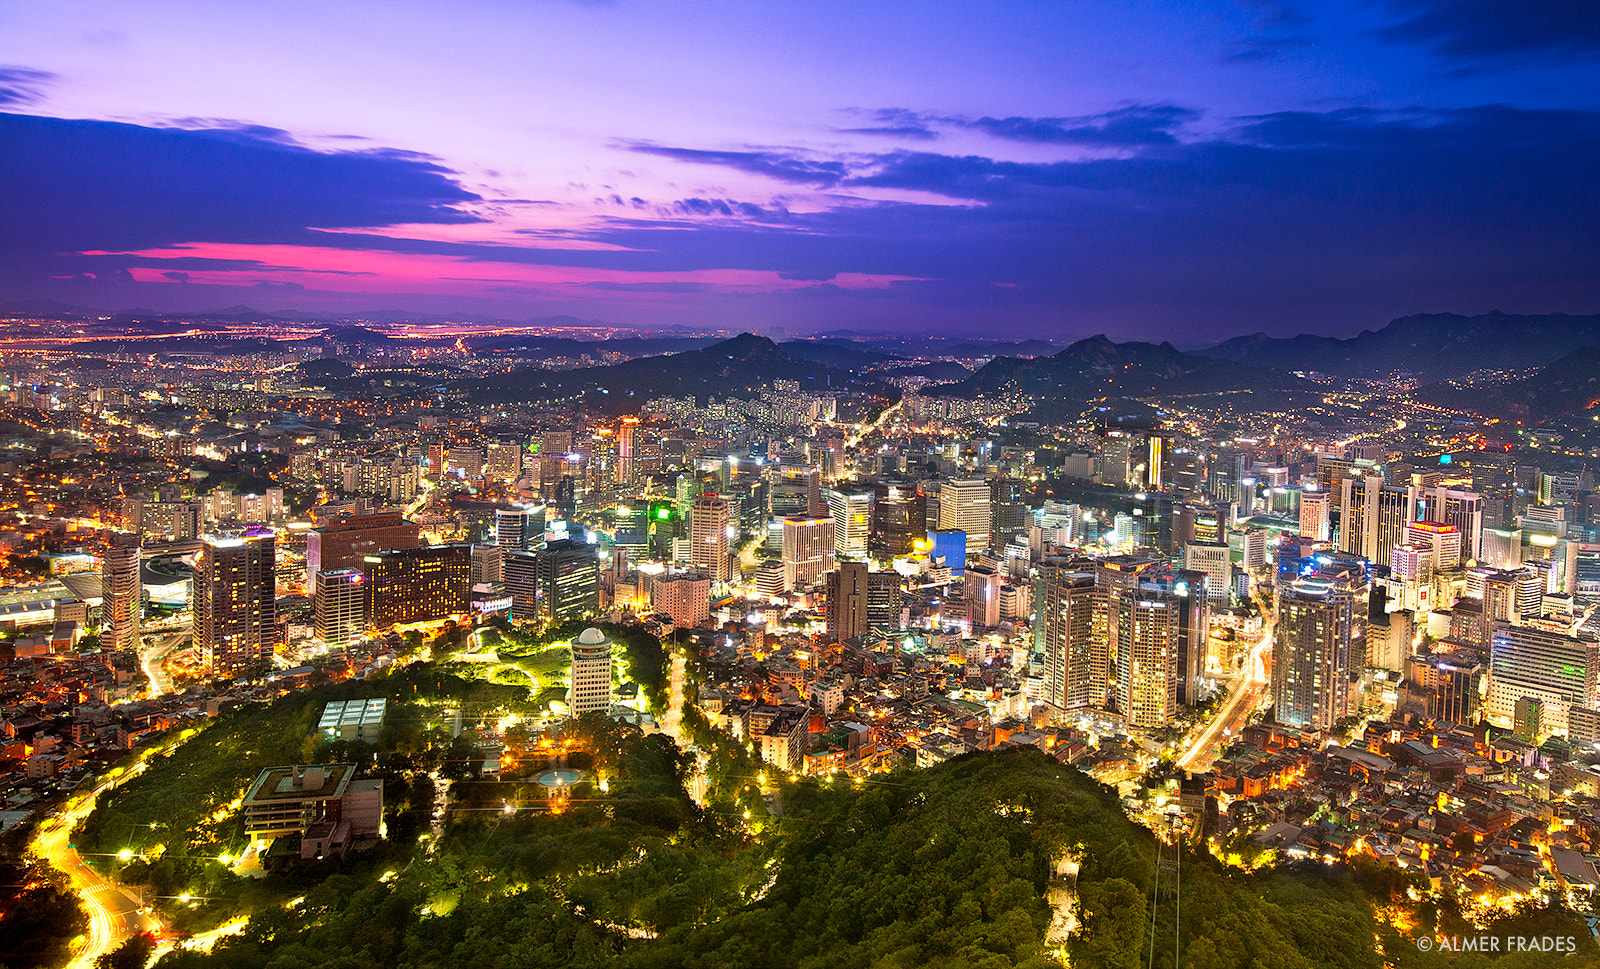 Photograph Sleepless in Seoul by Almer  Frades on 500px